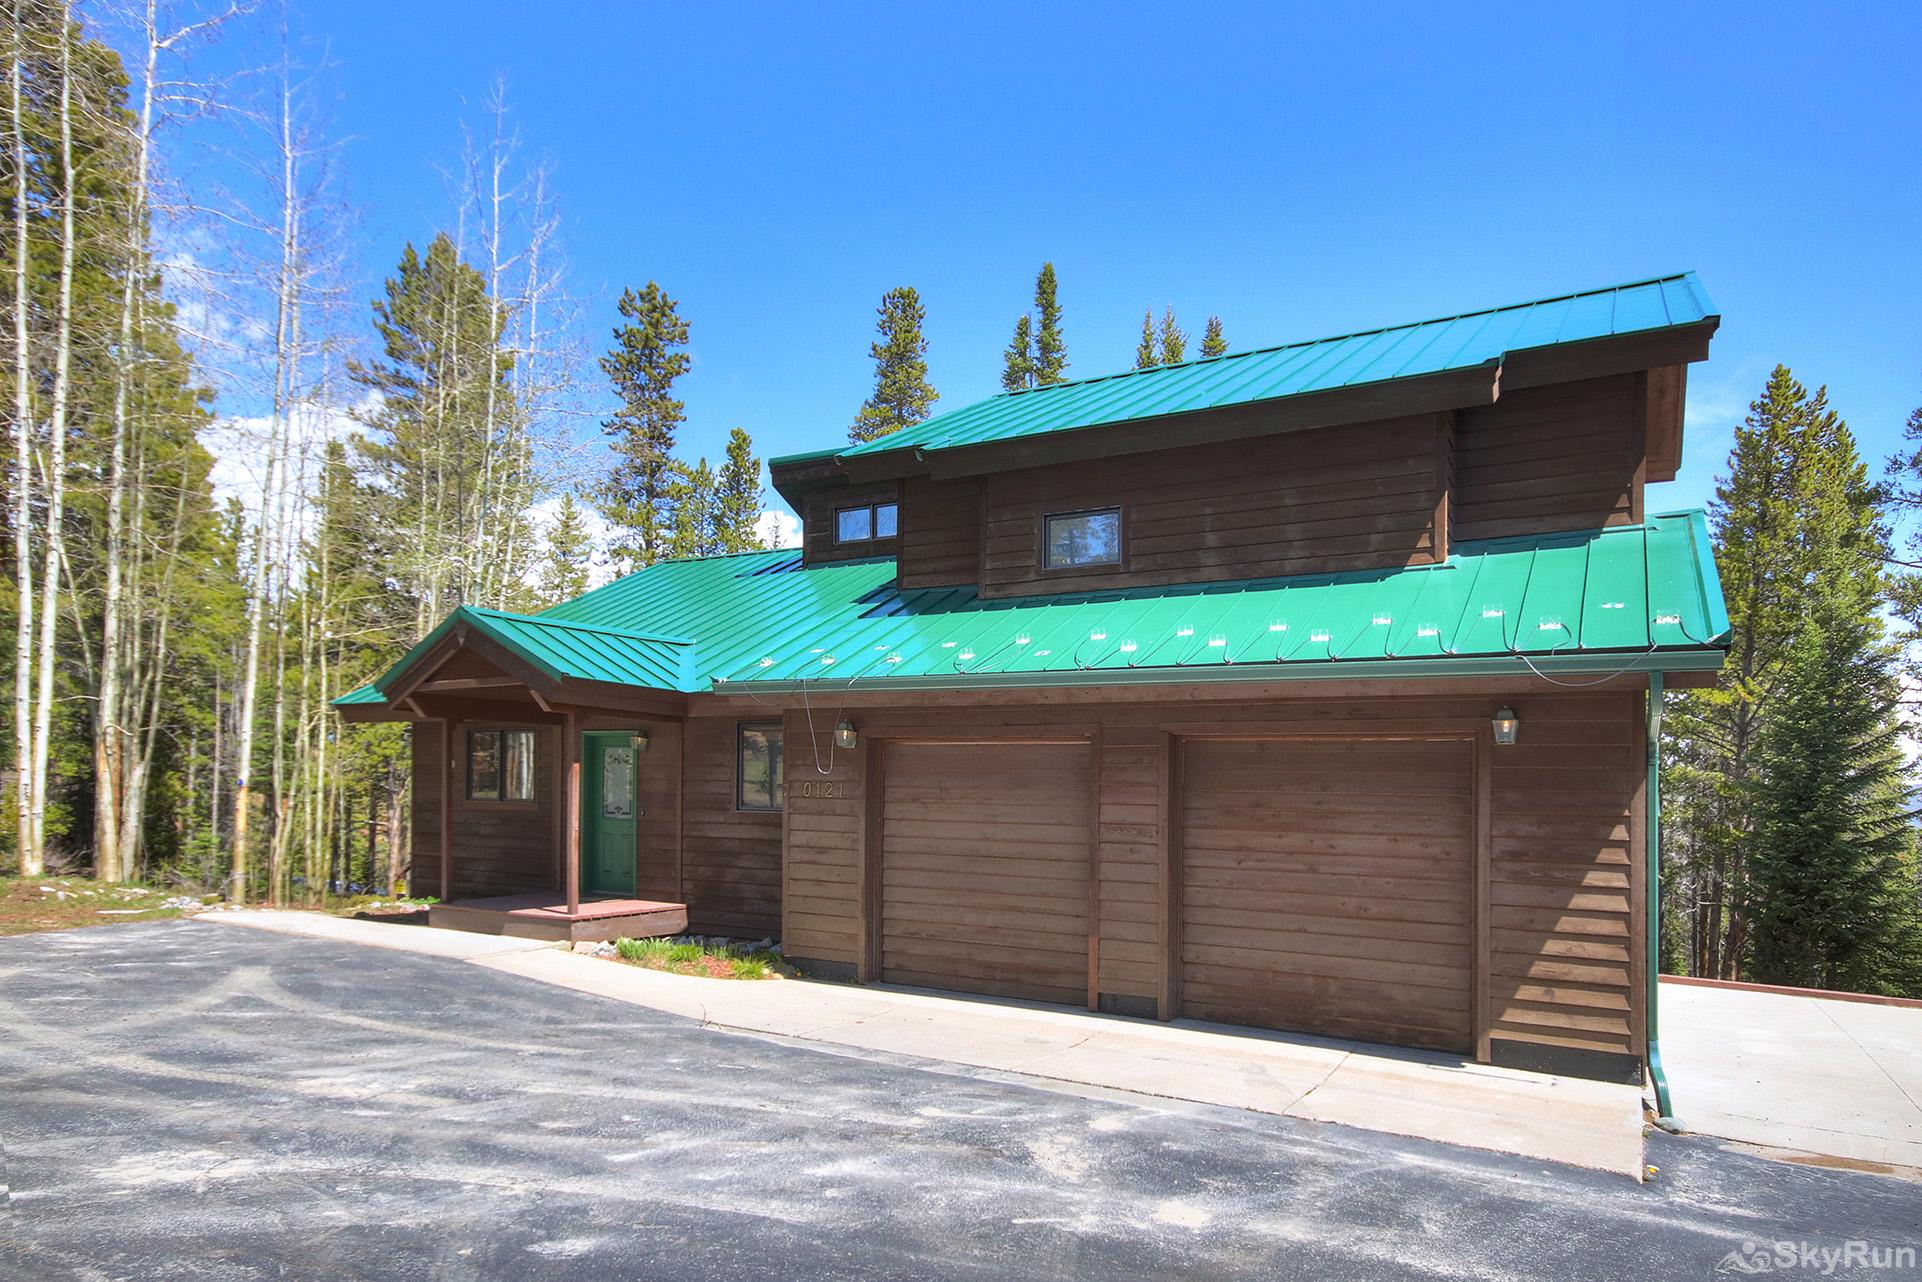 Aspen Heights Lodge Parking for 2 vehicles in the garage, 2 vehicles in the driveway